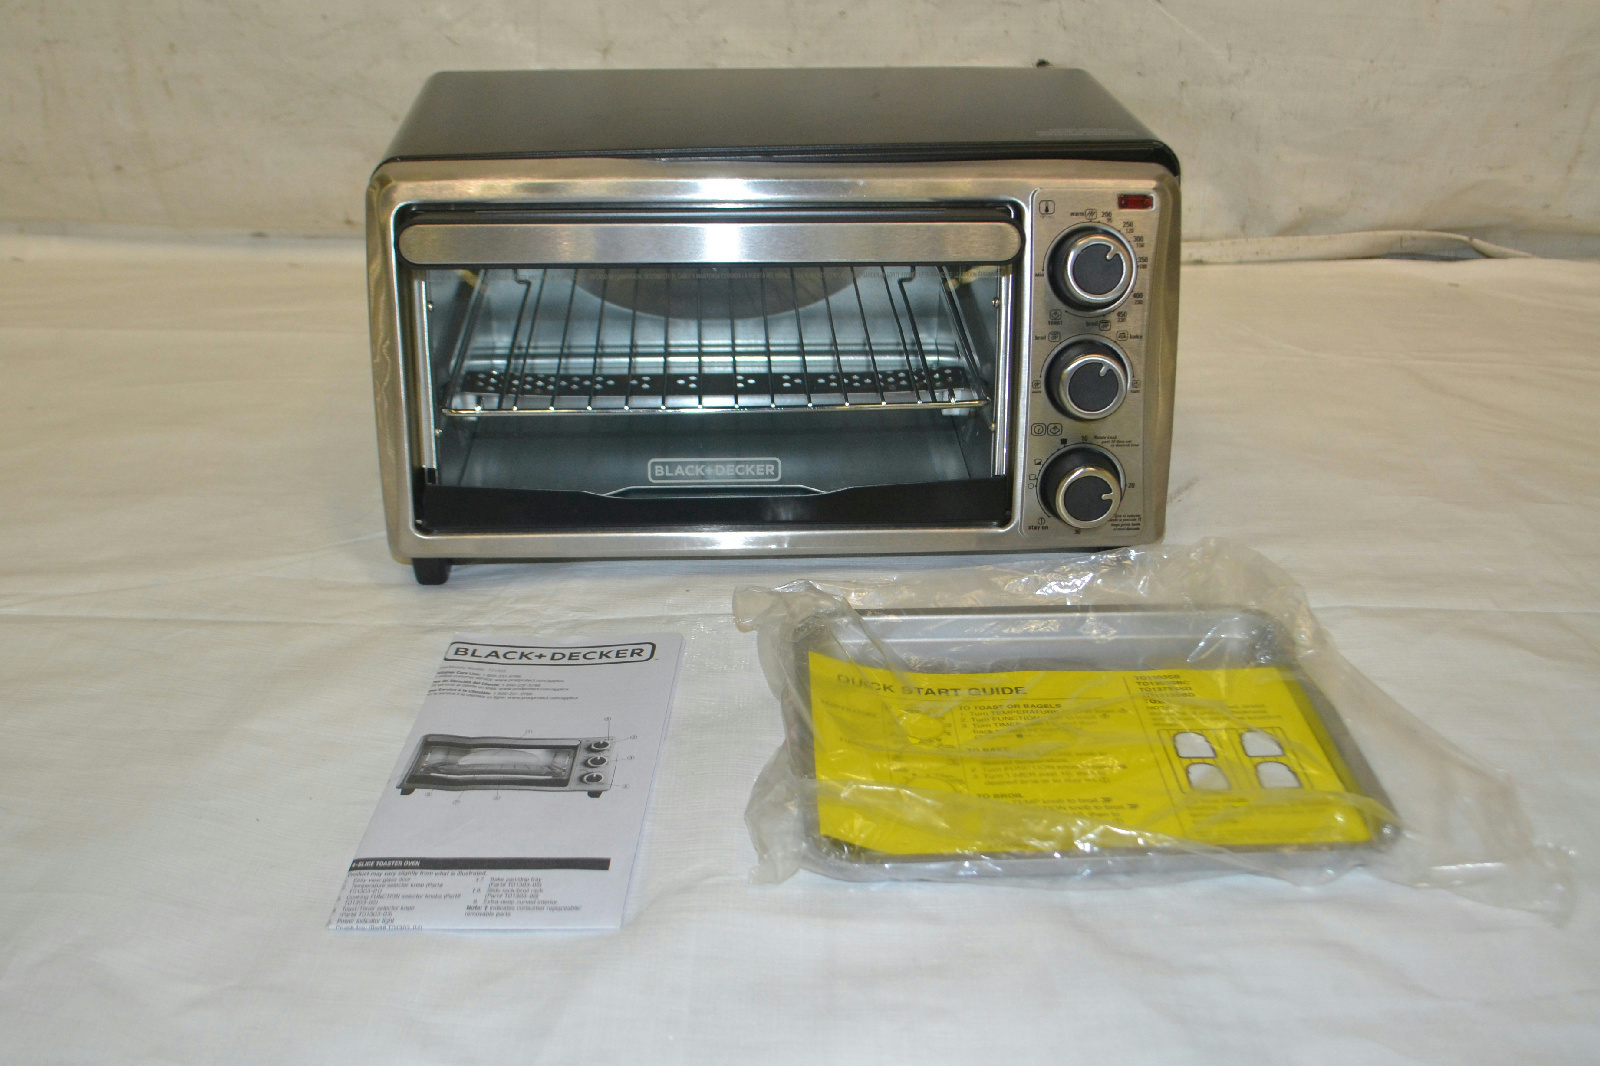 Black And Decker Countertop Oven Not Working : Details about Black and Decker TO1303SB 4-Slice Toaster Oven